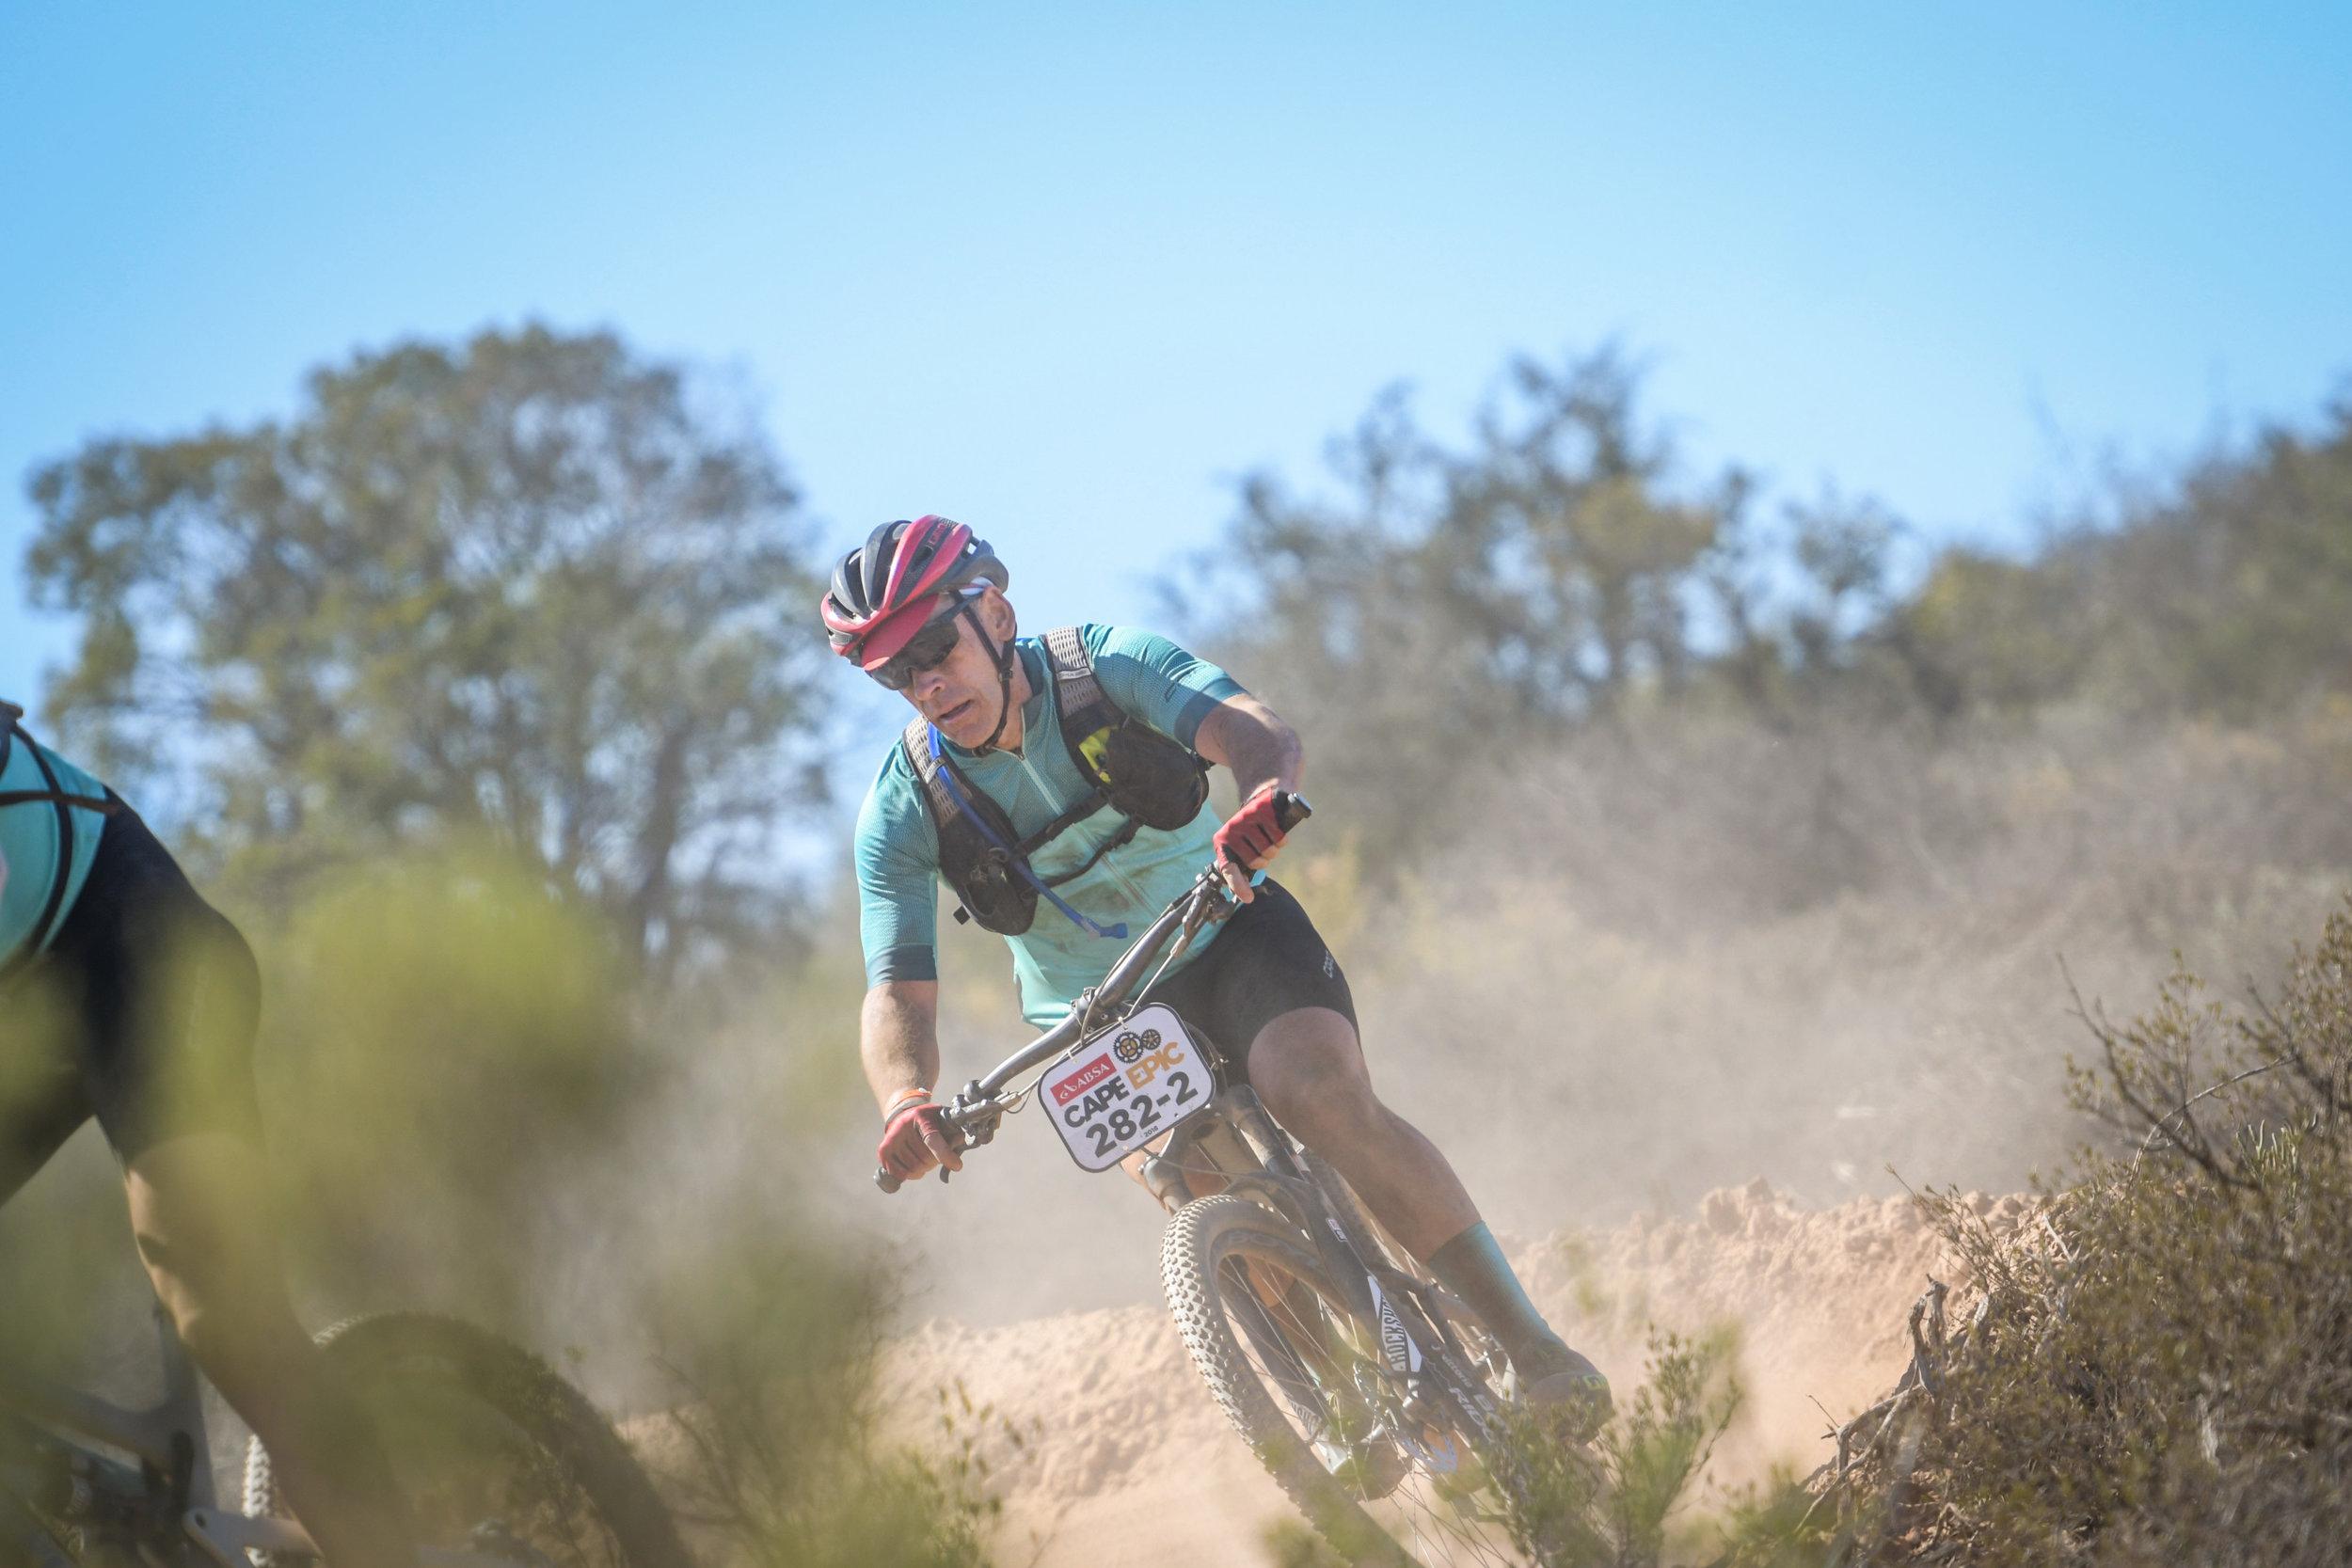 I rode Cape Epic with a prototype Camelbak hydration pack called the Chase.  It sits higher on your back and allows the rider to utilize your jersey pockets.  It is perfect mountain biking.